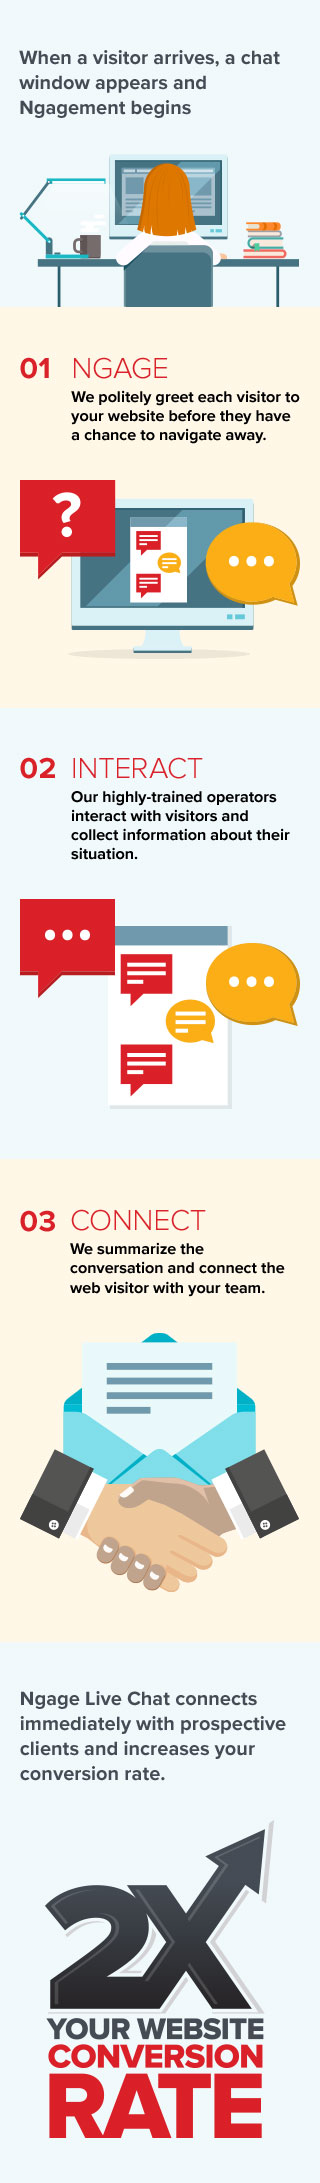 How Does Ngage Live Chat Work?